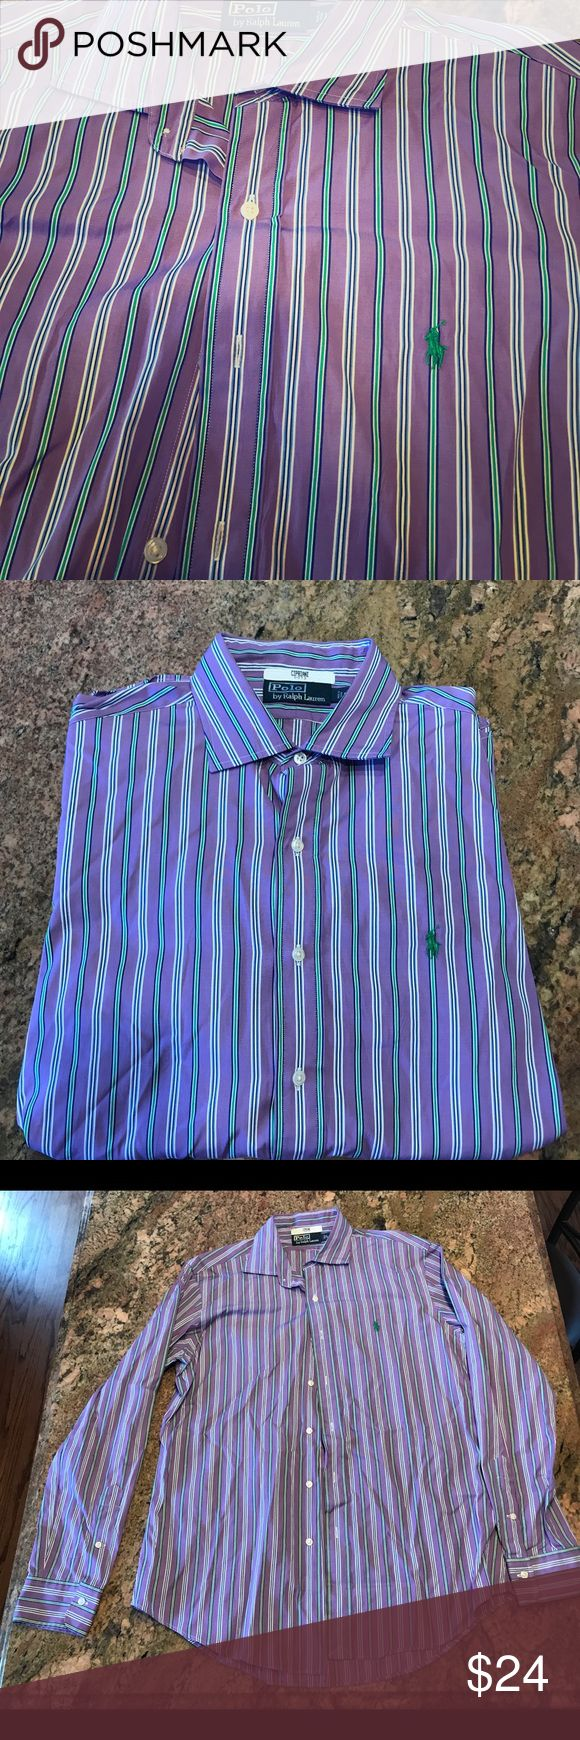 Polo Ralph Lauren Men's Large Dress Shirt Purple Handsome and classy Purple striped Men's Polo dress shirt with green pony. This is beautifully colored is comfortable, no defects, smoke free home. 100% Cotton. Sleeves 26.5 inches from shoulder seam, 28.5 inches from neck top button to waist, 24 inch waist. Thank you for stopping by and looking around! Polo by Ralph Lauren Shirts Dress Shirts